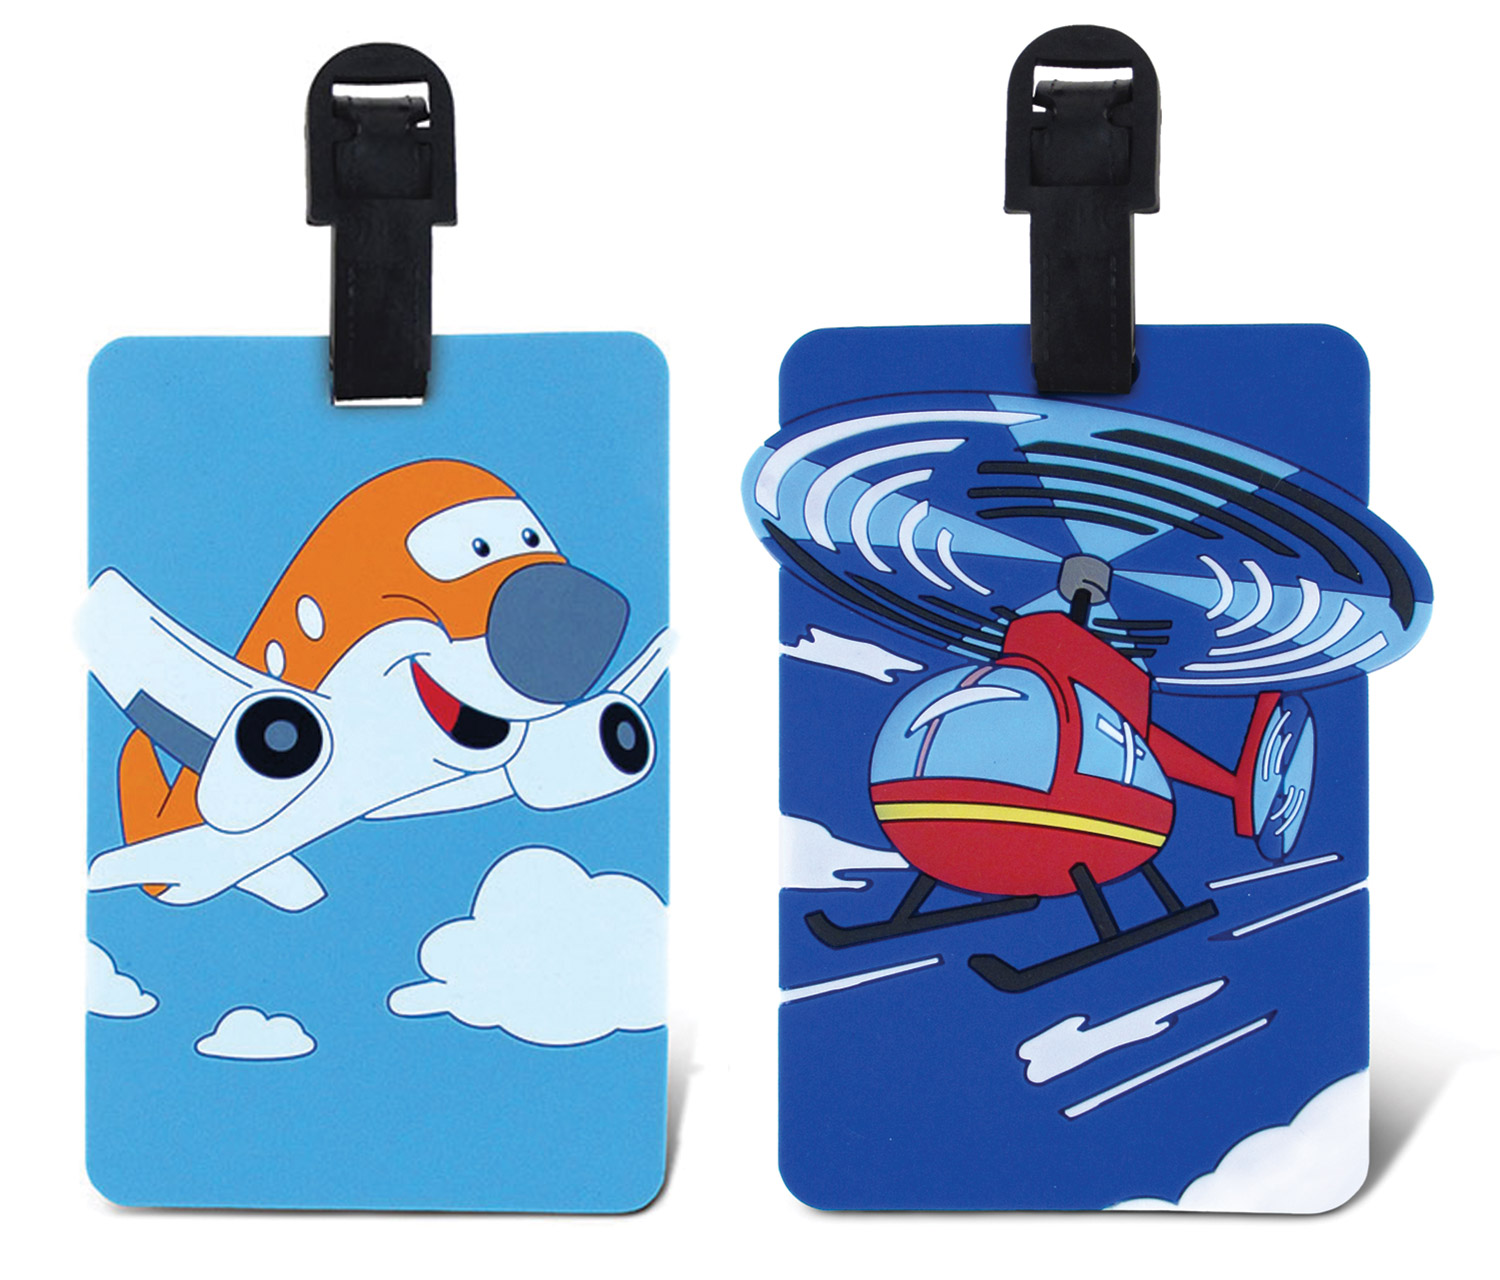 Puzzled Taggage Airplane And Helicopter Luggage Tag 3.5X5...